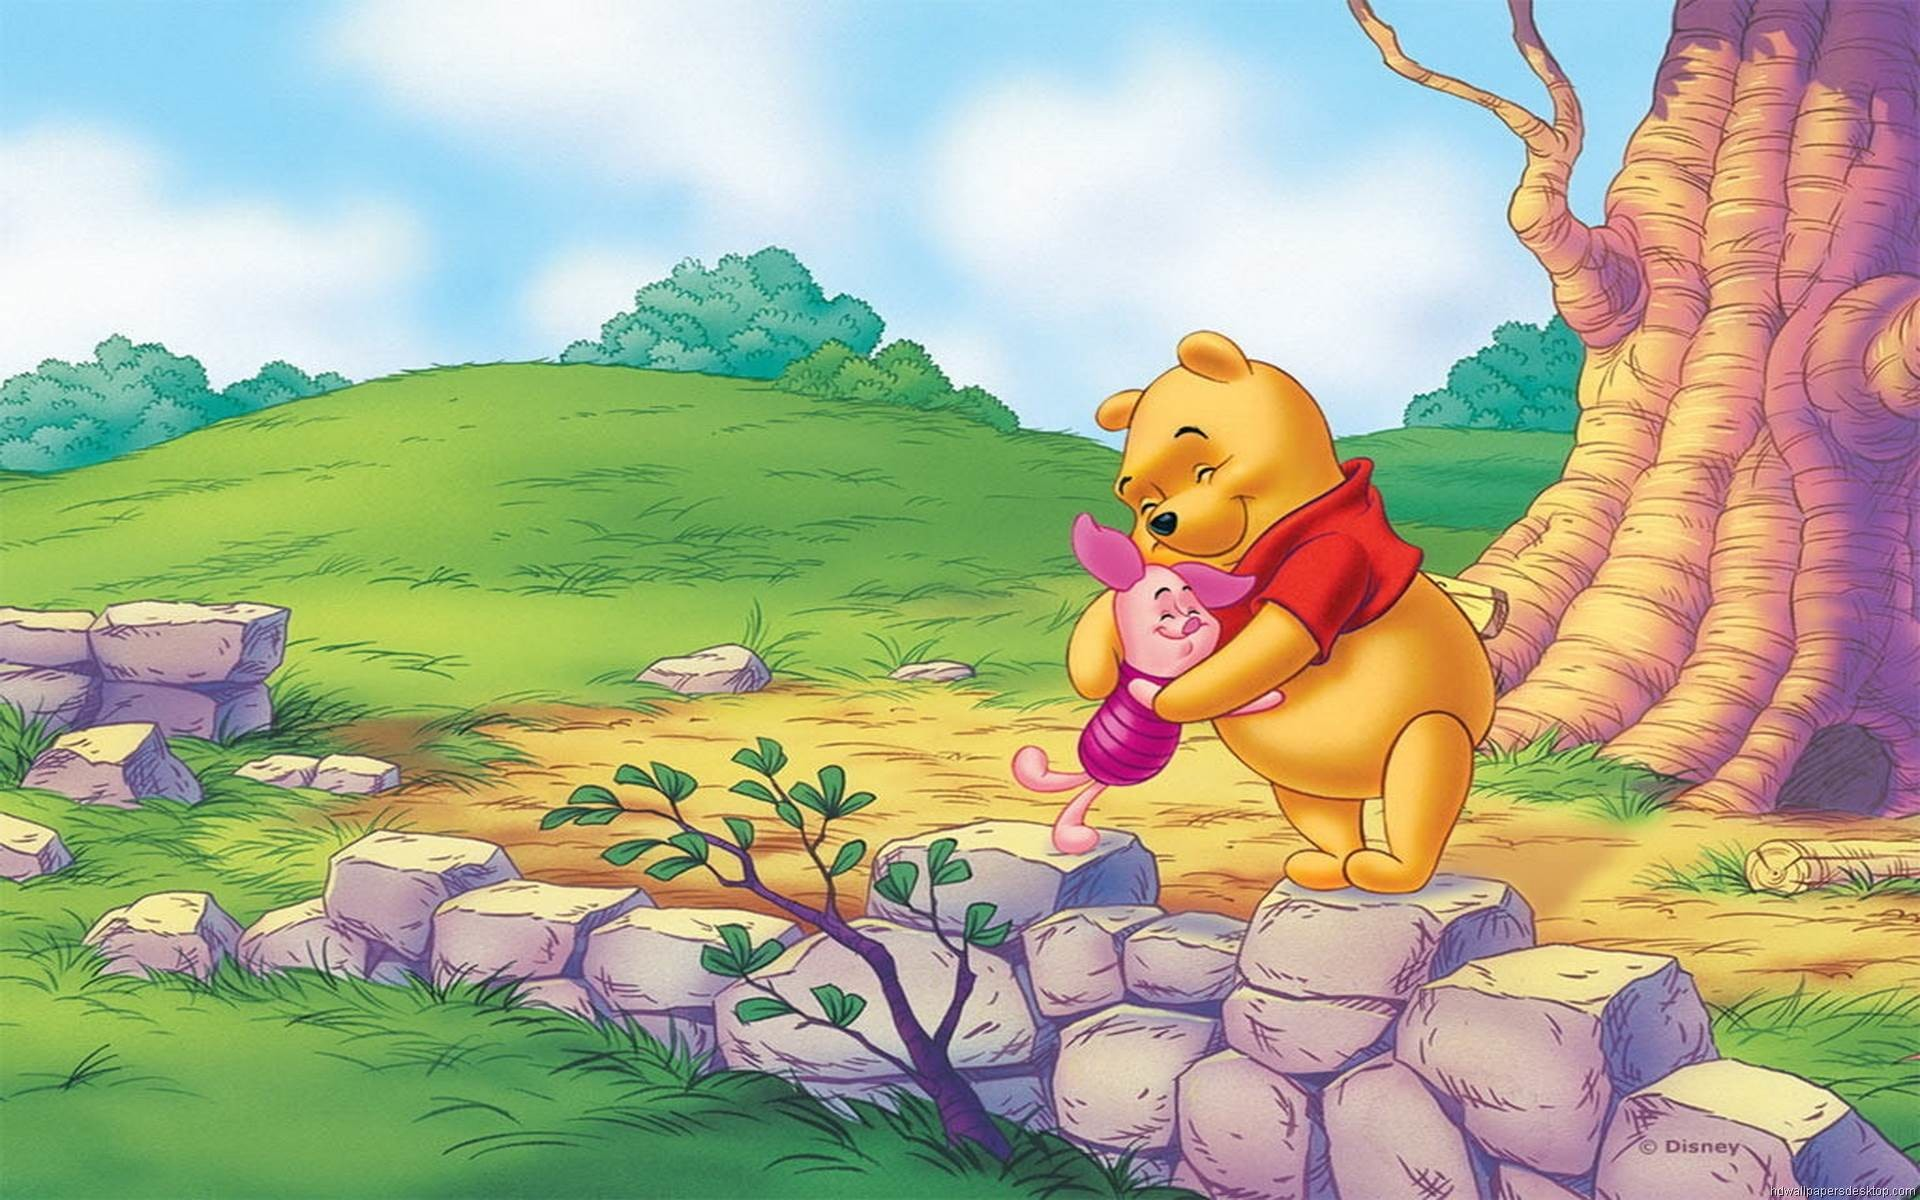 Great Wallpaper Halloween Winnie The Pooh - 724225-beautiful-winnie-the-pooh-christmas-wallpaper-1920x1200  Perfect Image Reference_232278.jpg